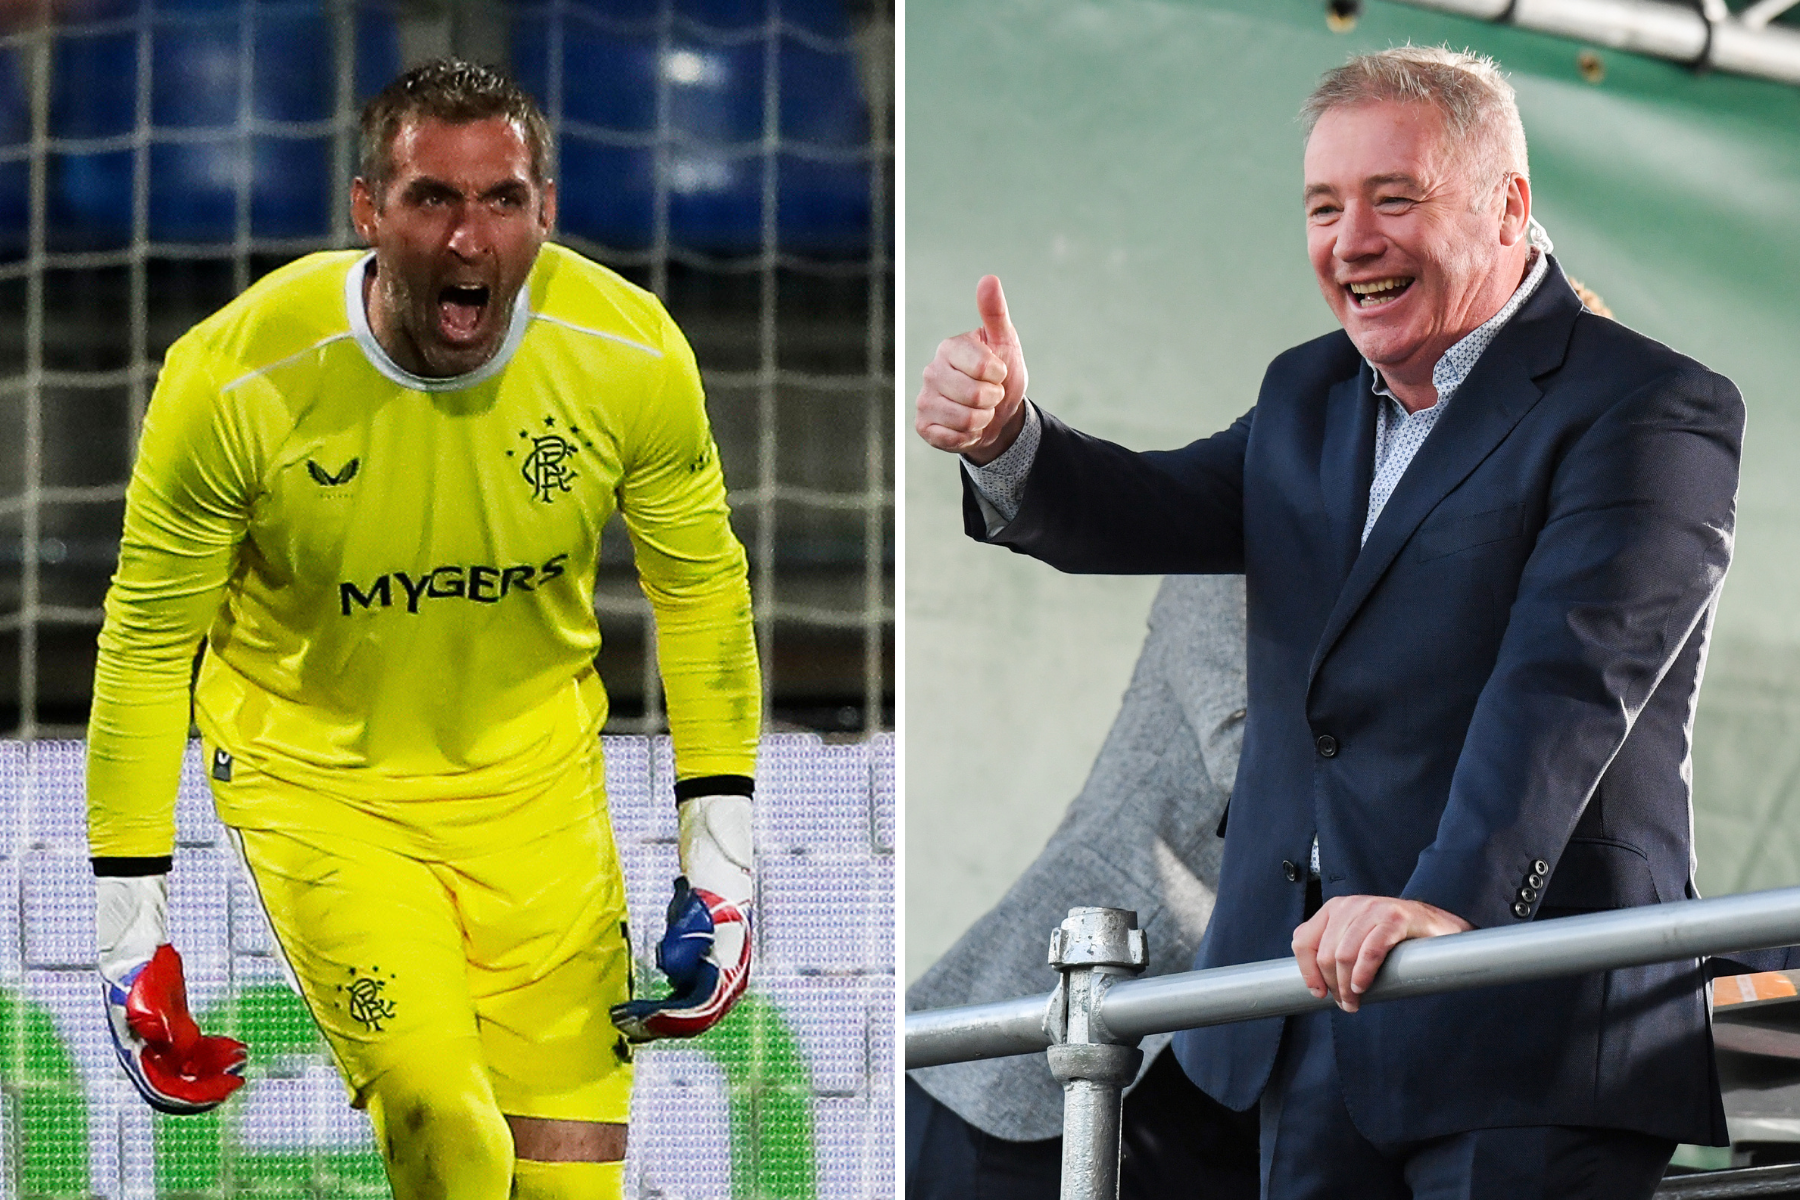 Ally McCoist compares Rangers keeper Allan McGregor to Gordon Banks after miracle Slavia Prague save